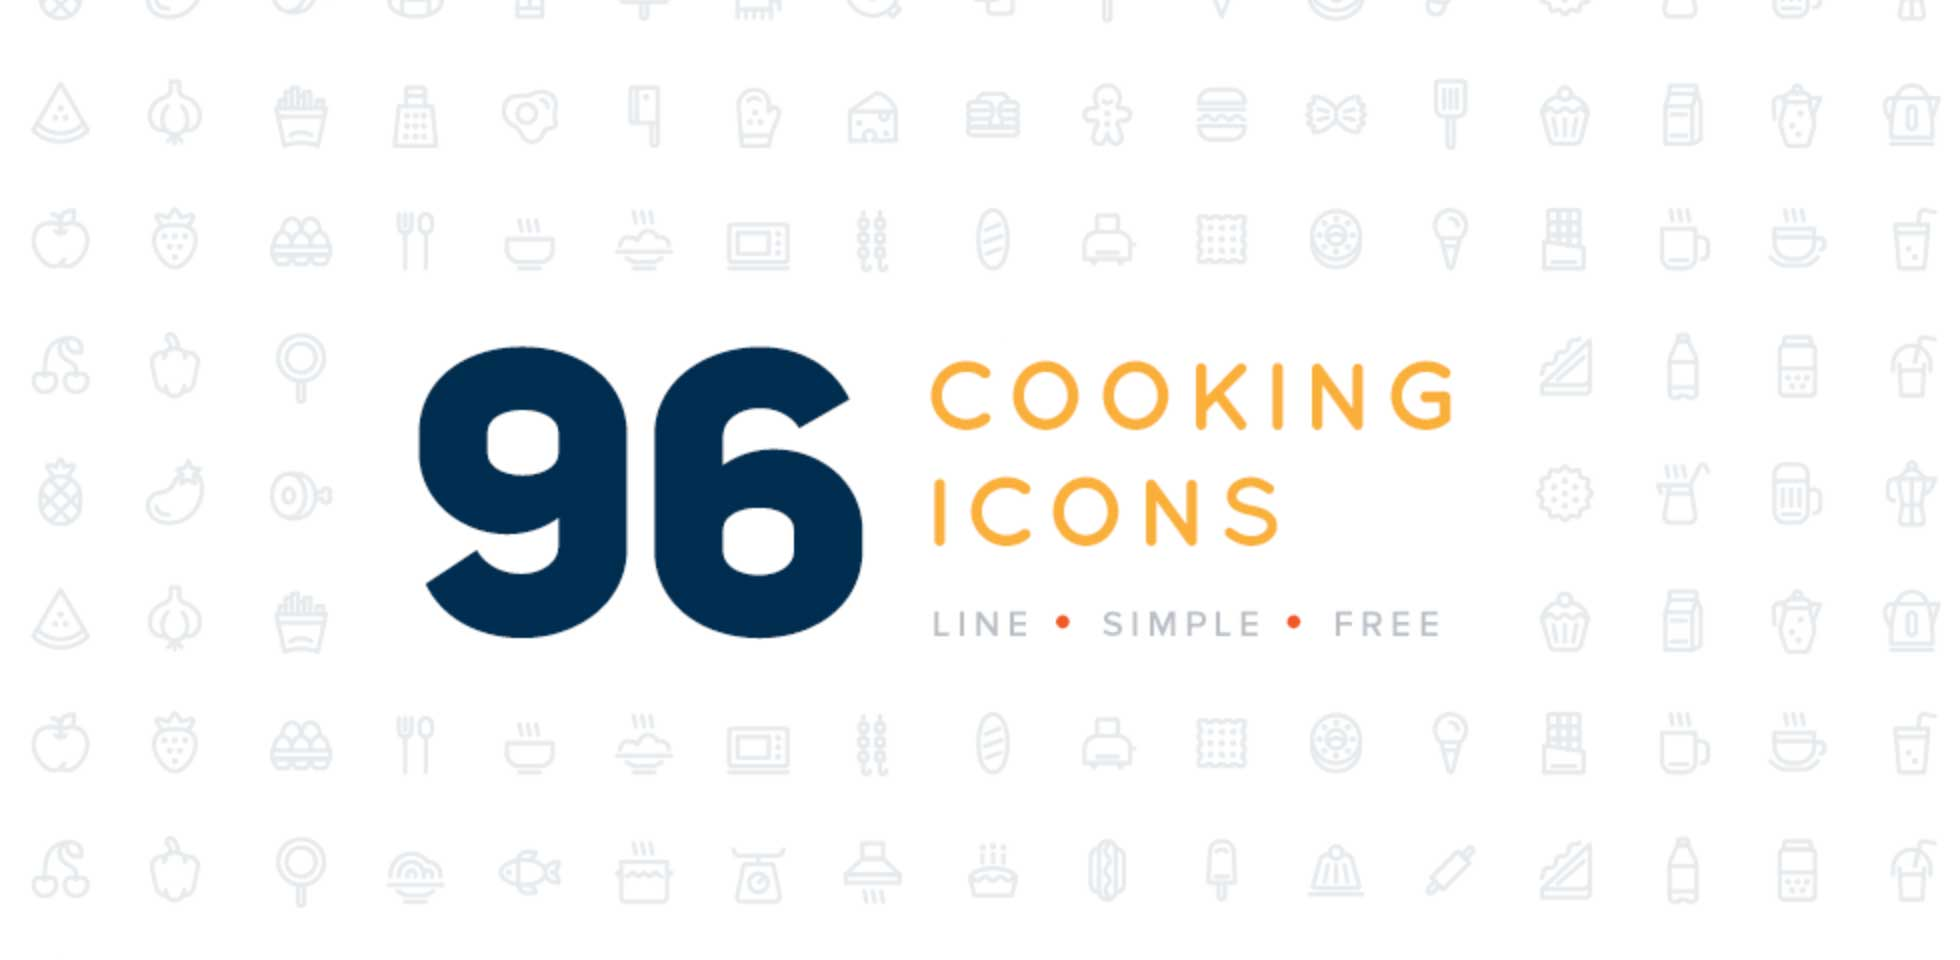 Free Download: 96 Cooking Icons